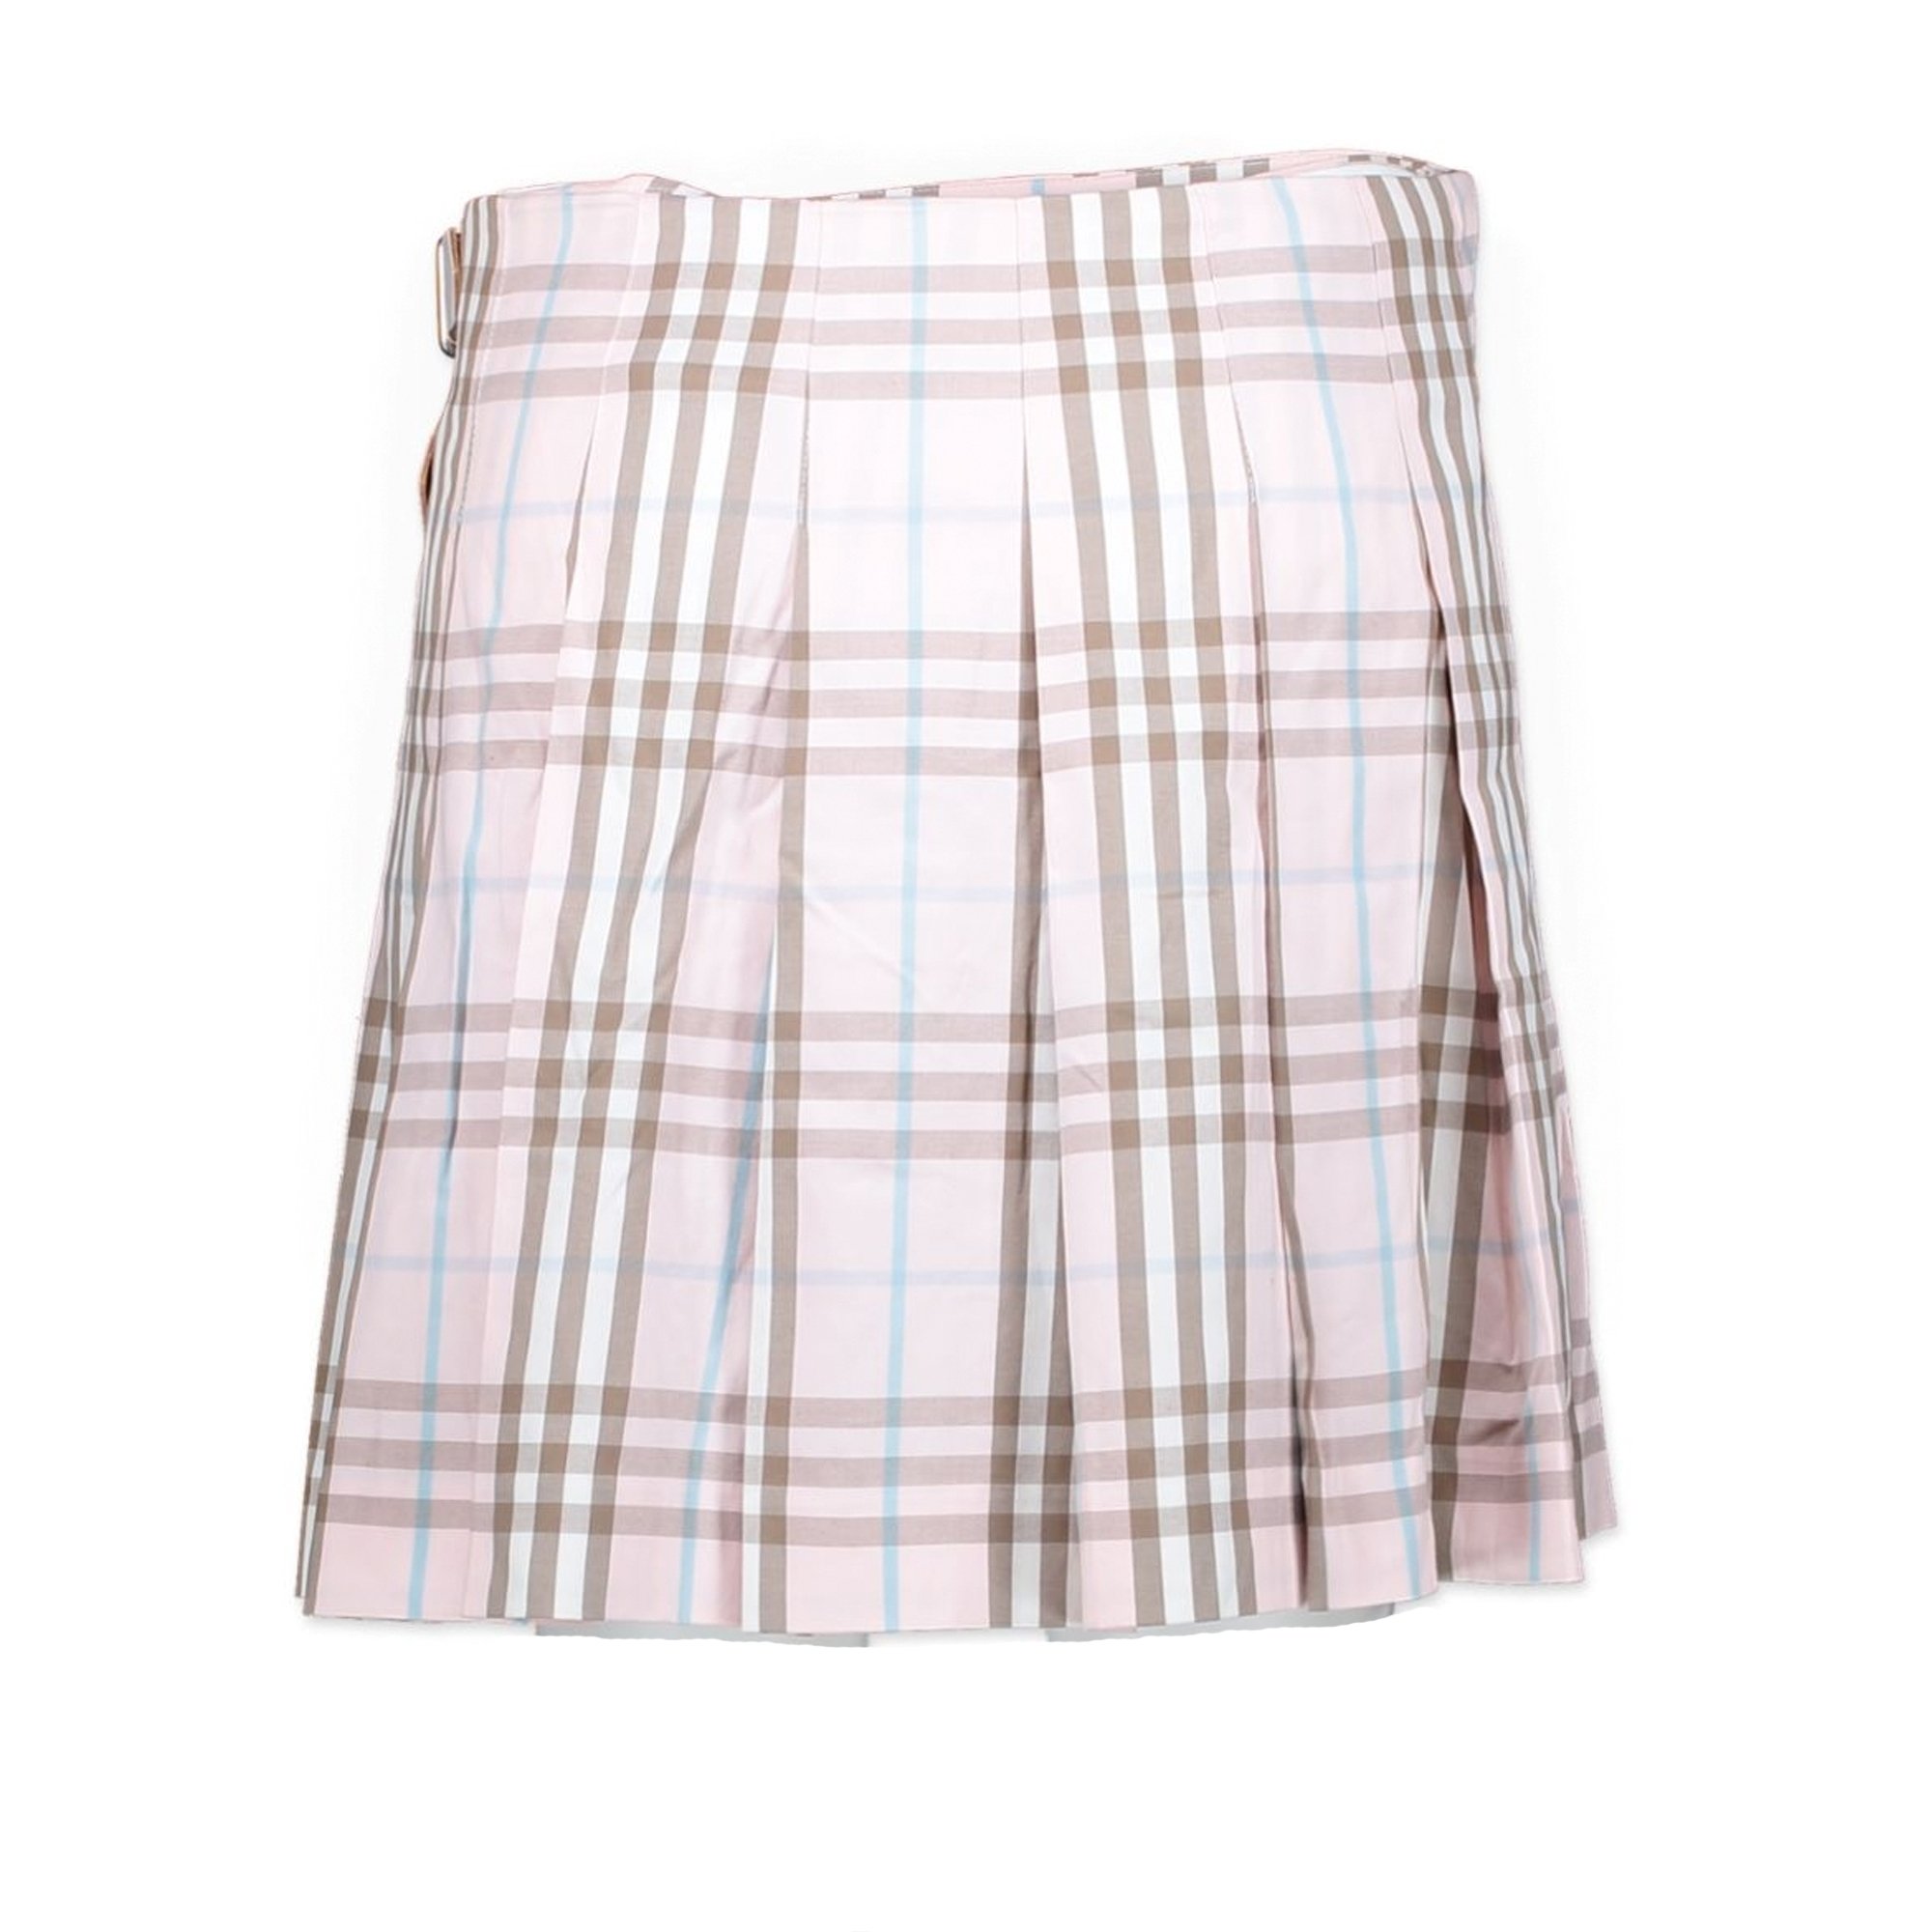 Buy authentic secondhand Burberry skirt at Labellov vintage designer webshop for the right prices safe and secure online shopping.